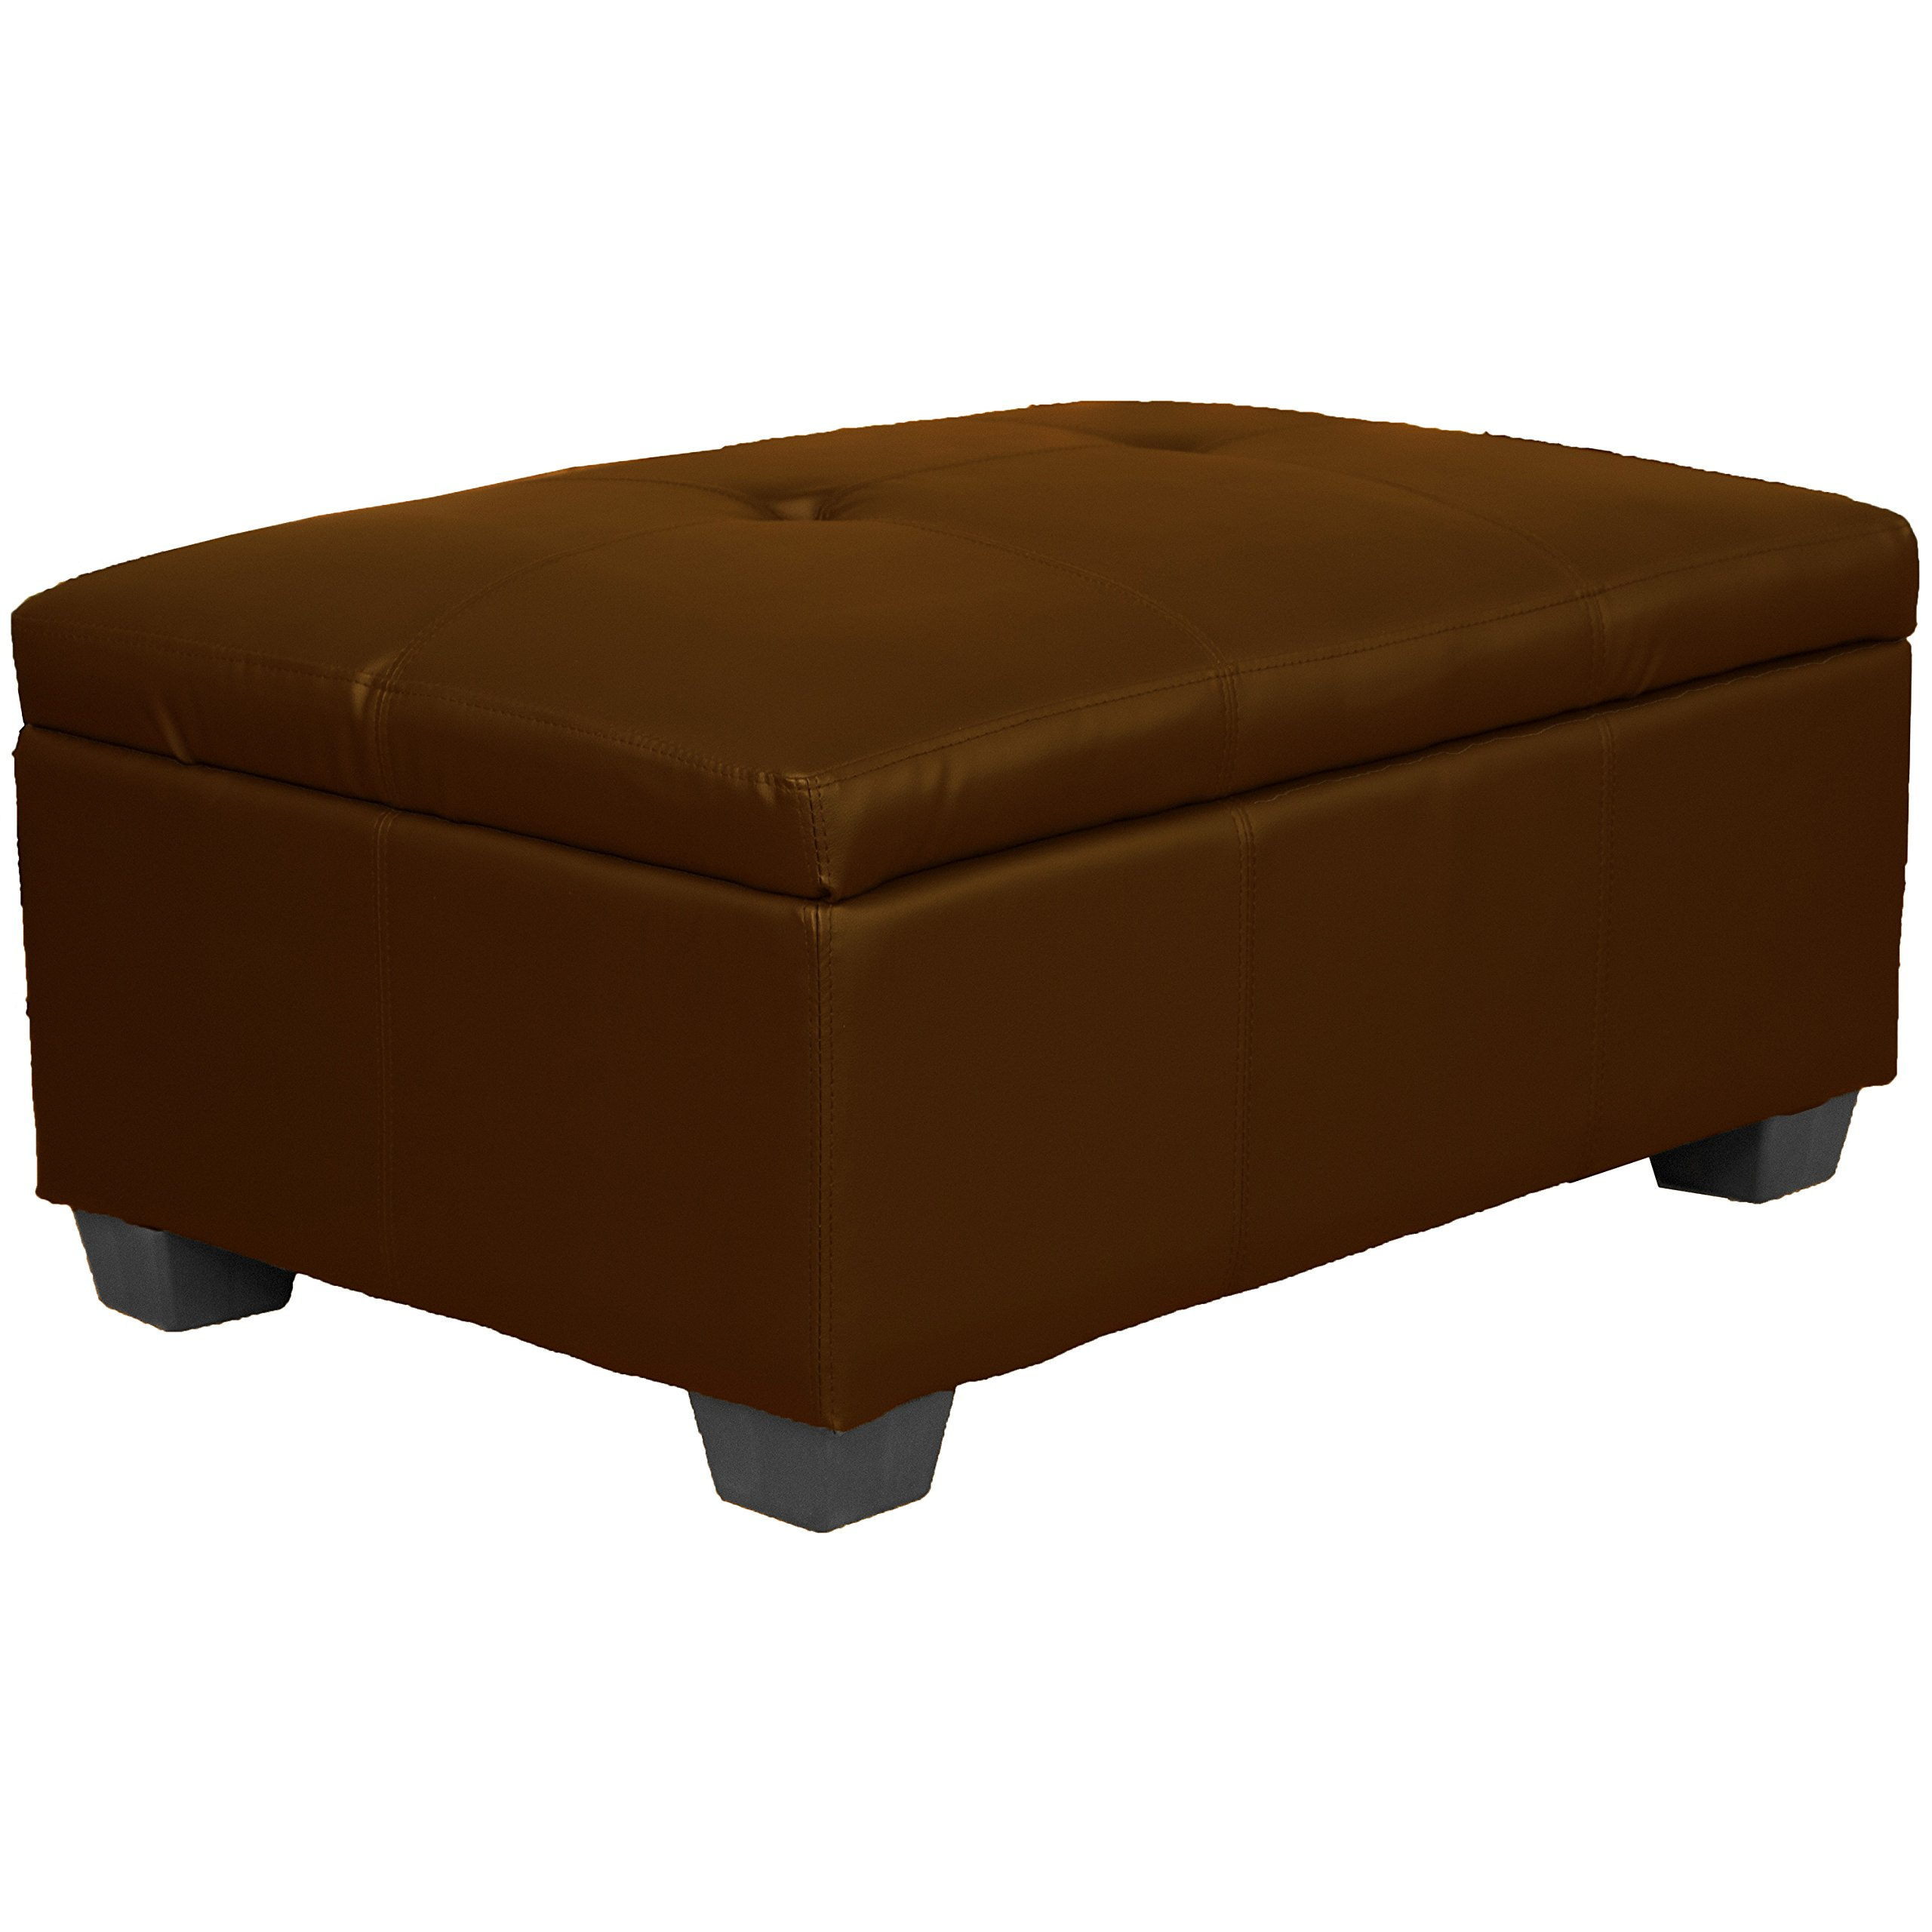 36'' x 24'' x 18'' high Tufted Padded Hinged Storage Ottoman Bench, Leather Look Saddle by Epic Furnishings